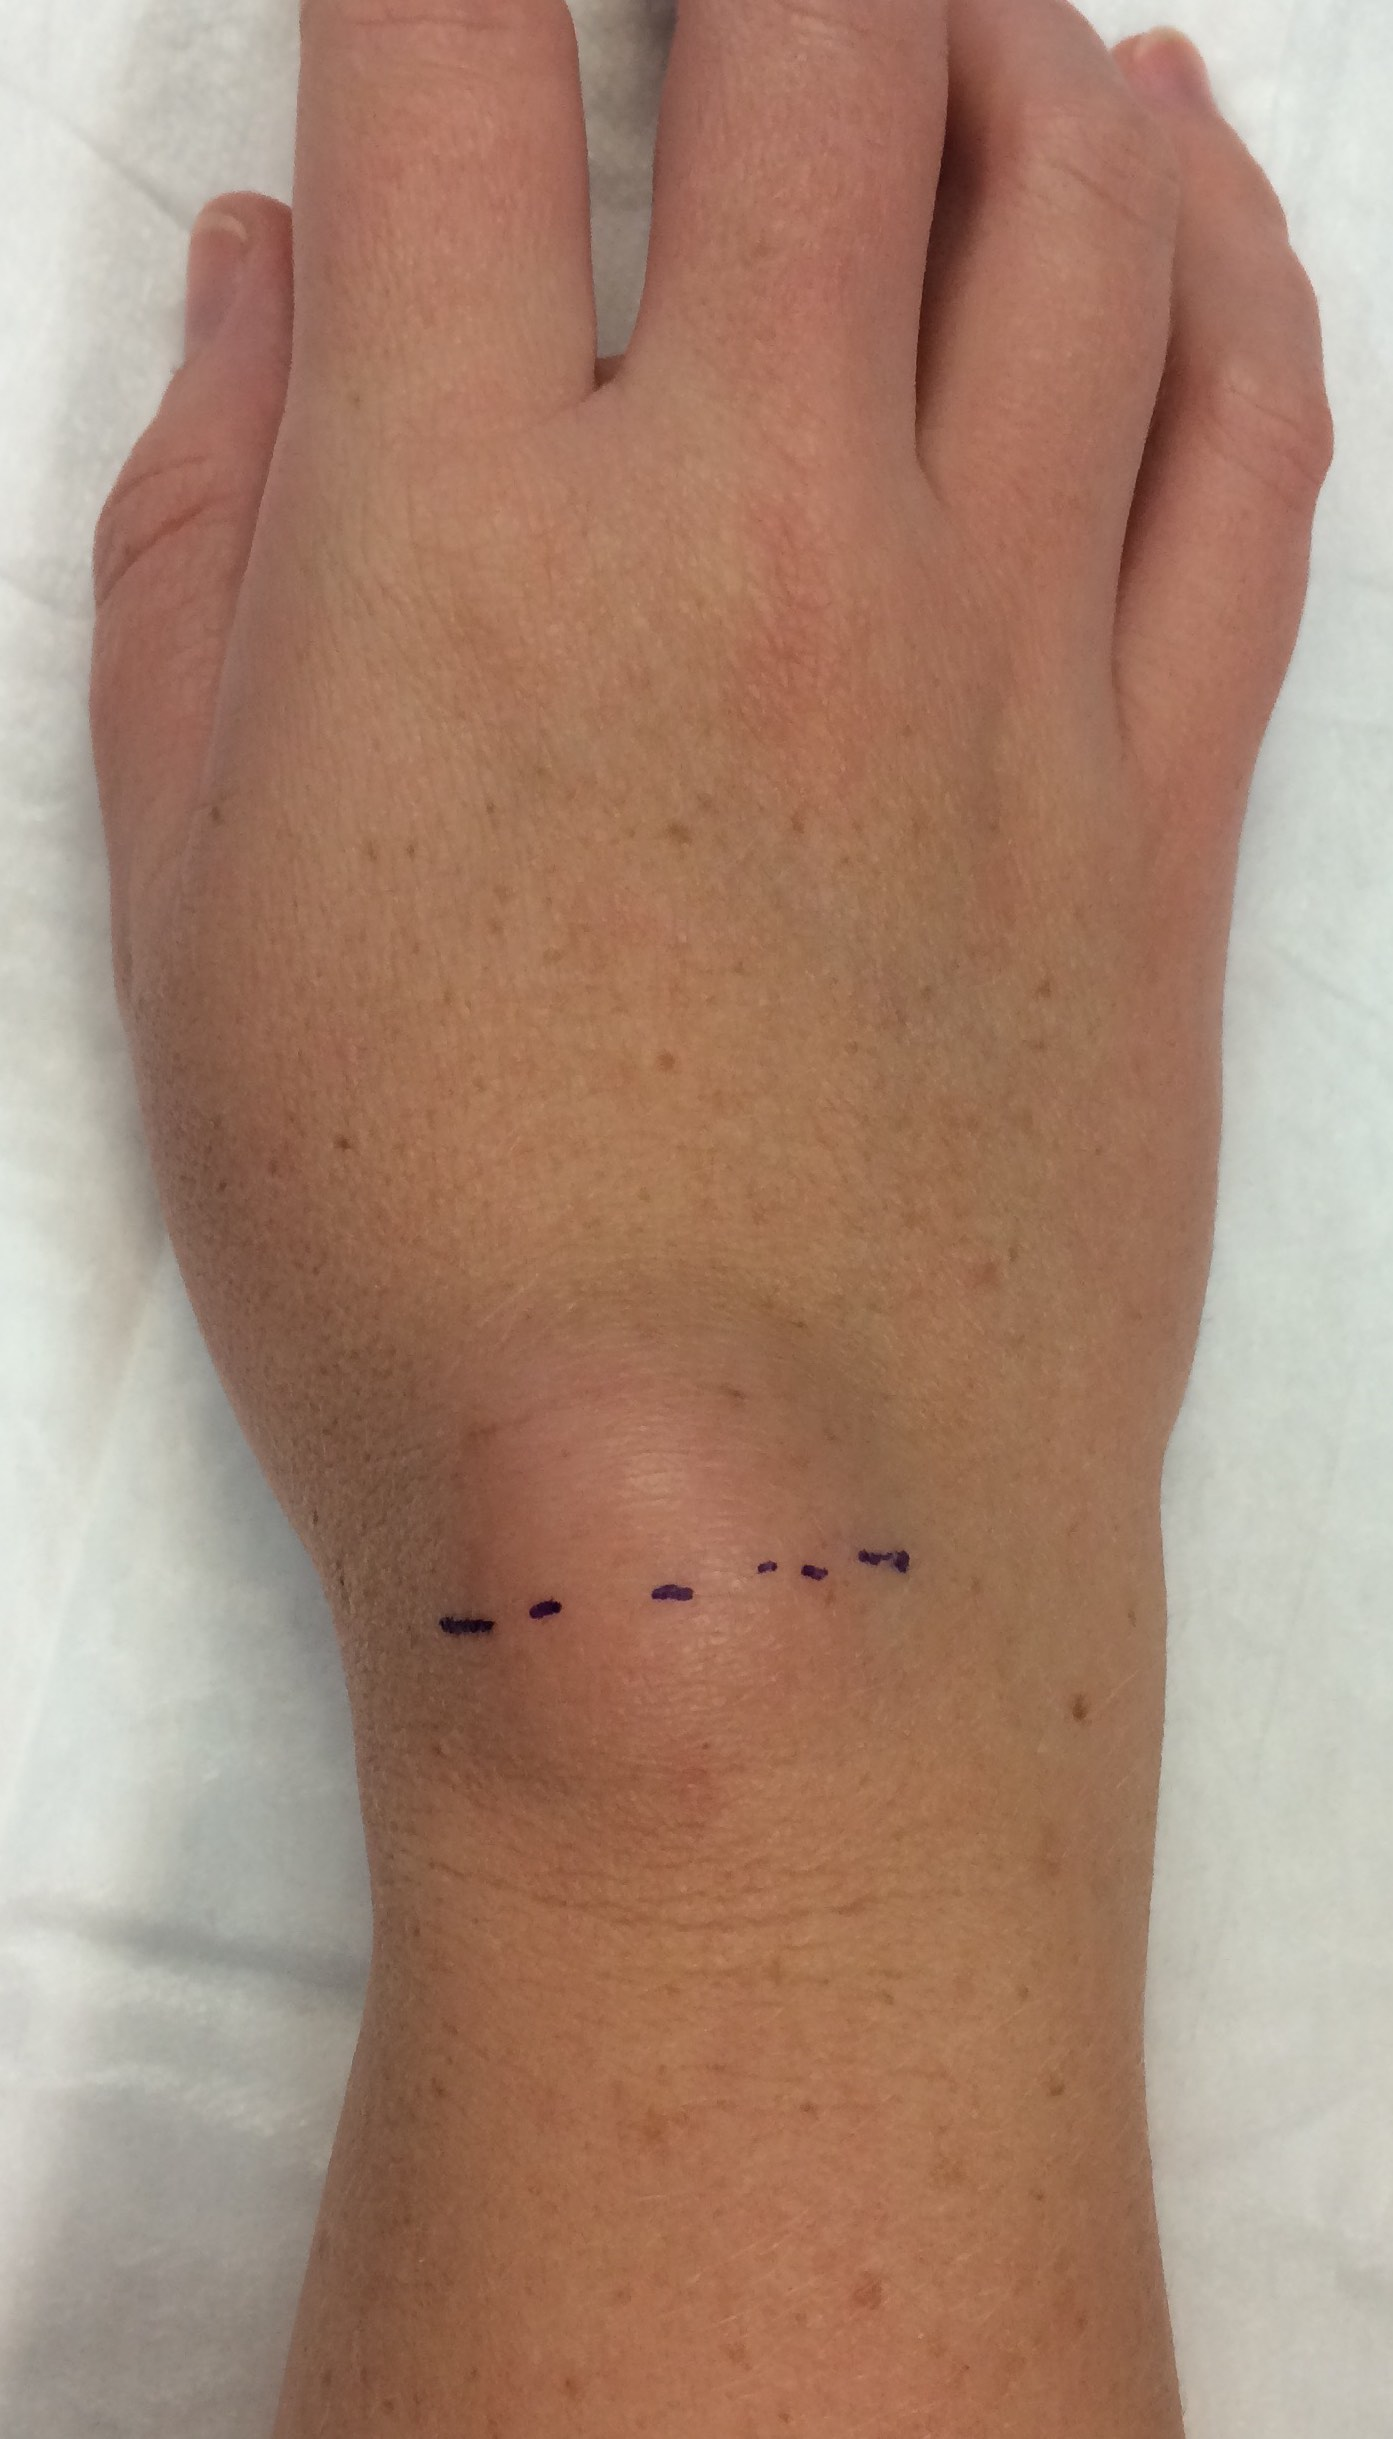 A wrist ganglion with surgery incision marked